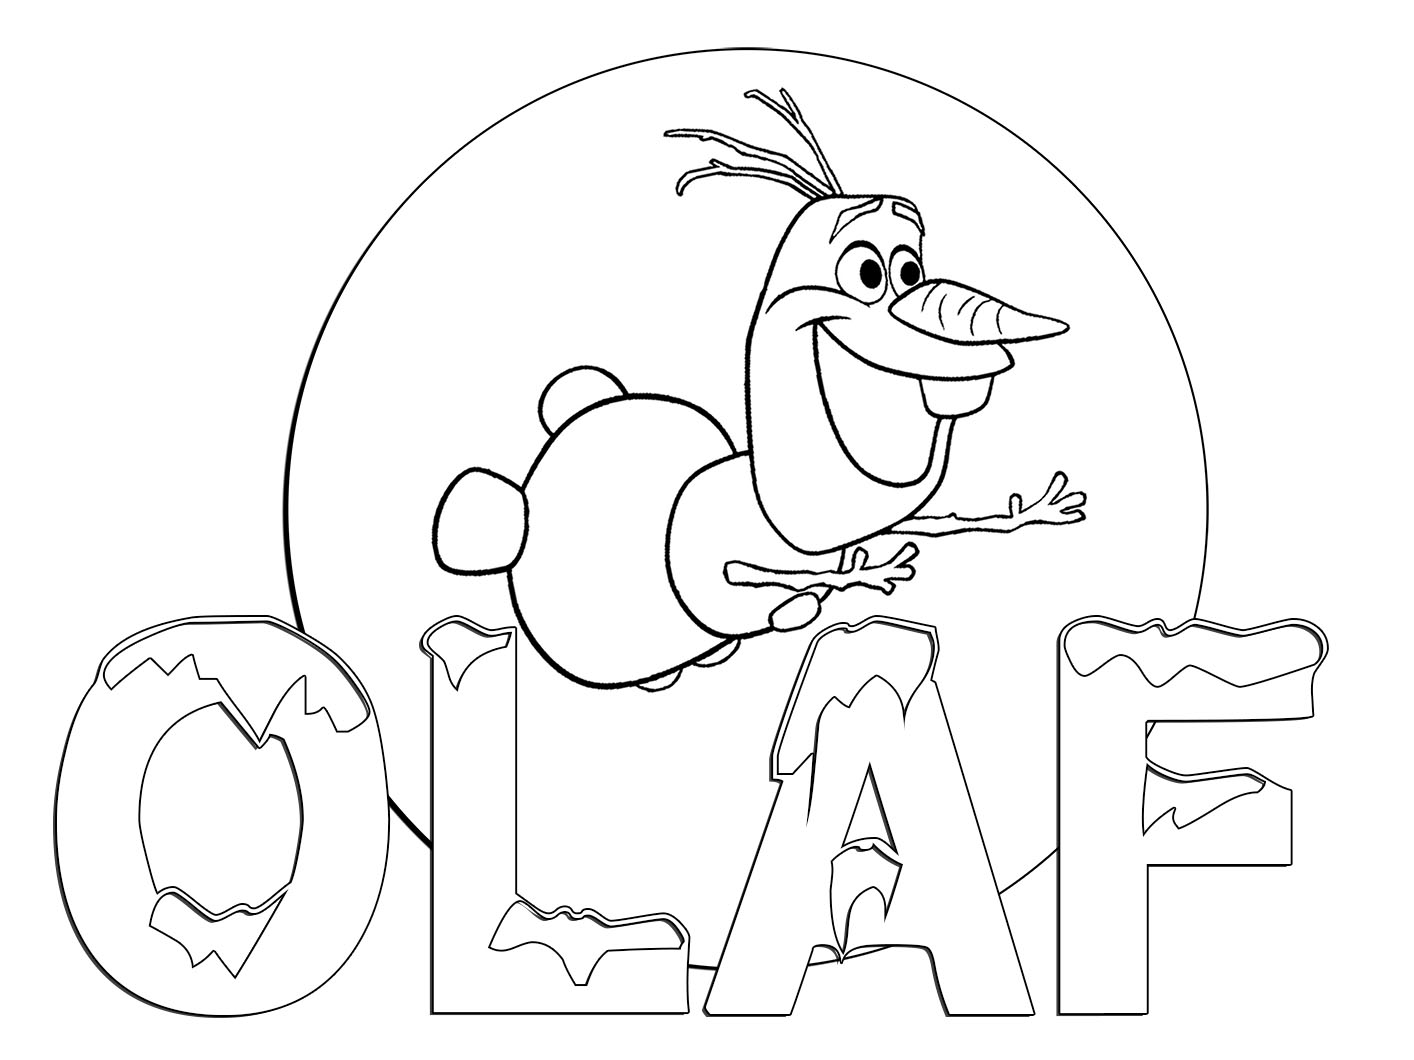 coloring in pages for children - photo #5